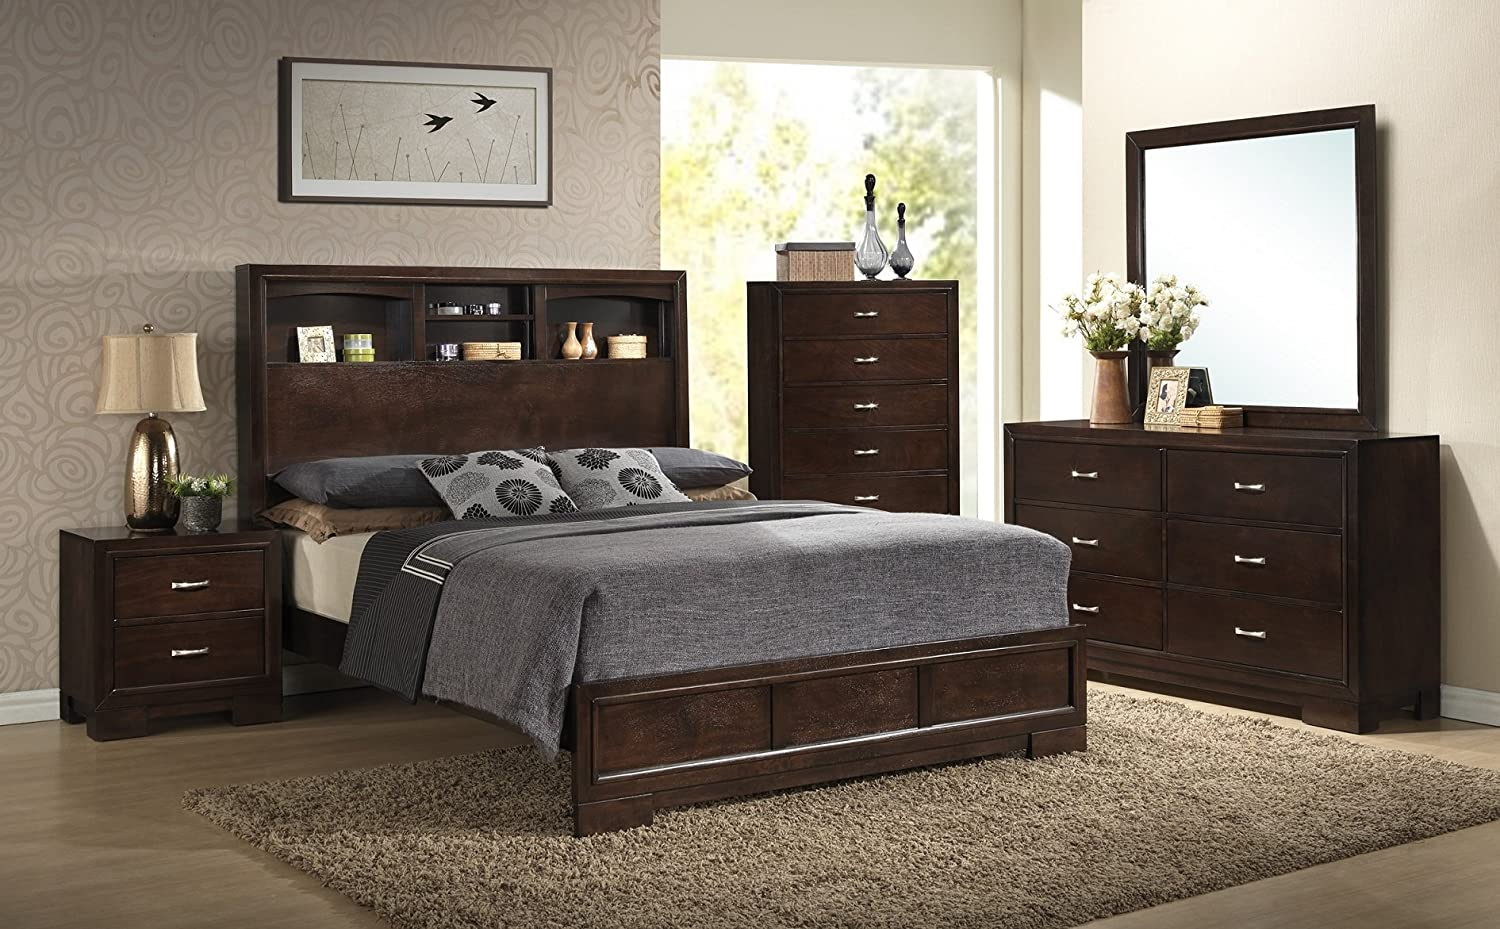 Amazon.com: Roundhill Furniture Montana Modern Wood Bookcase Bed, King,  Walnut: Kitchen U0026 Dining